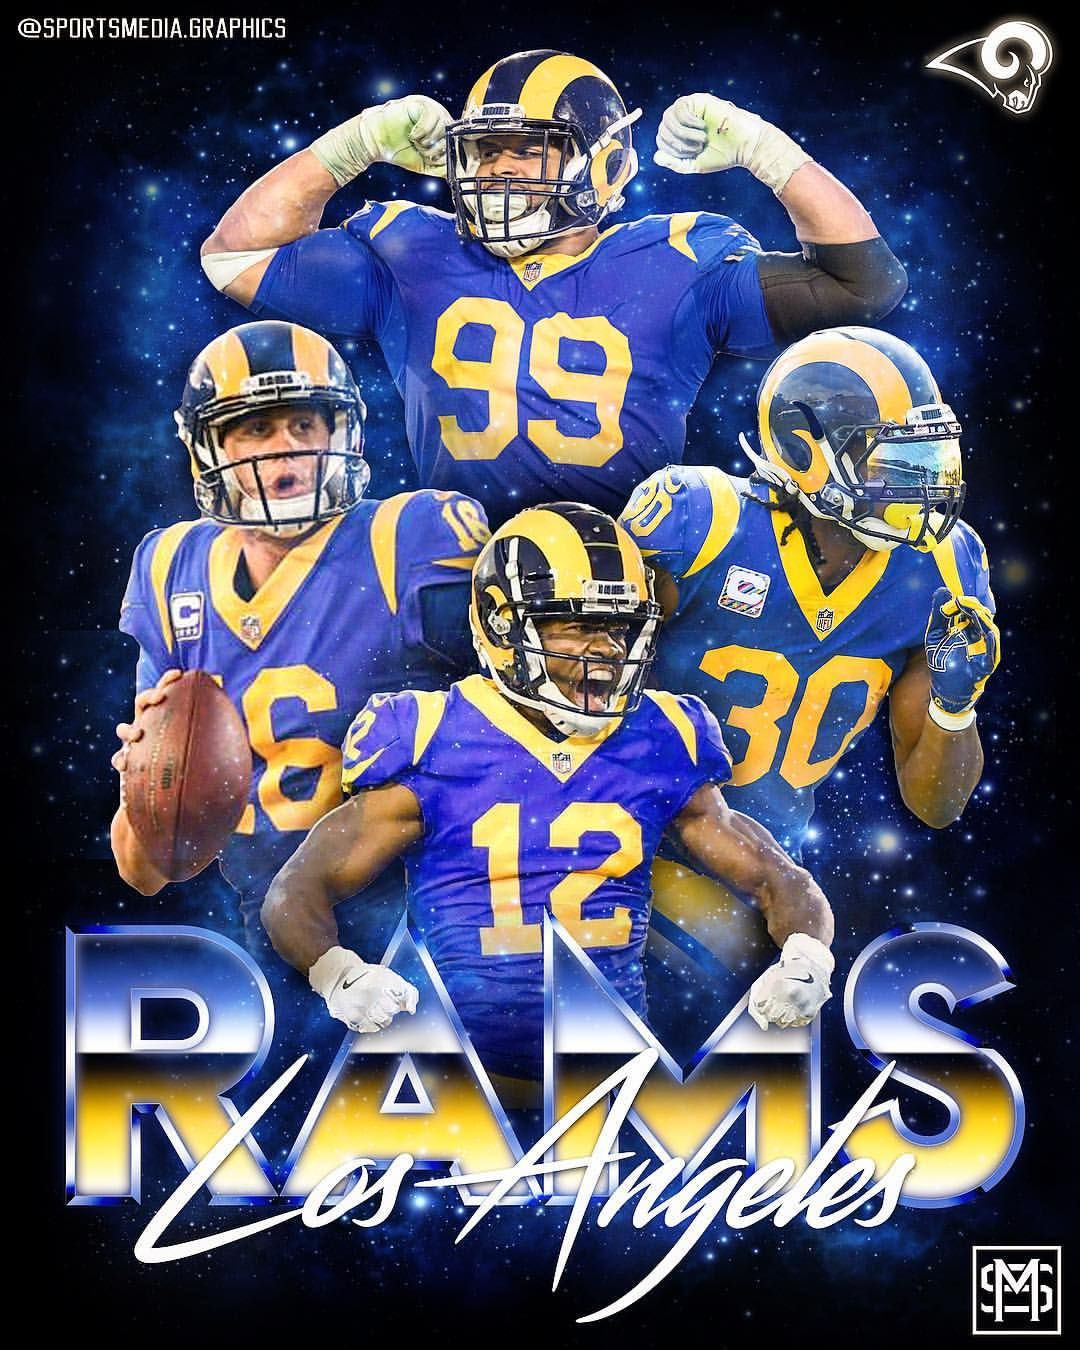 Hd Backgrounds Los Angeles Rams 2021 Nfl Football Wallpapers Los Angeles Rams Nfl Football Wallpaper Rams Football